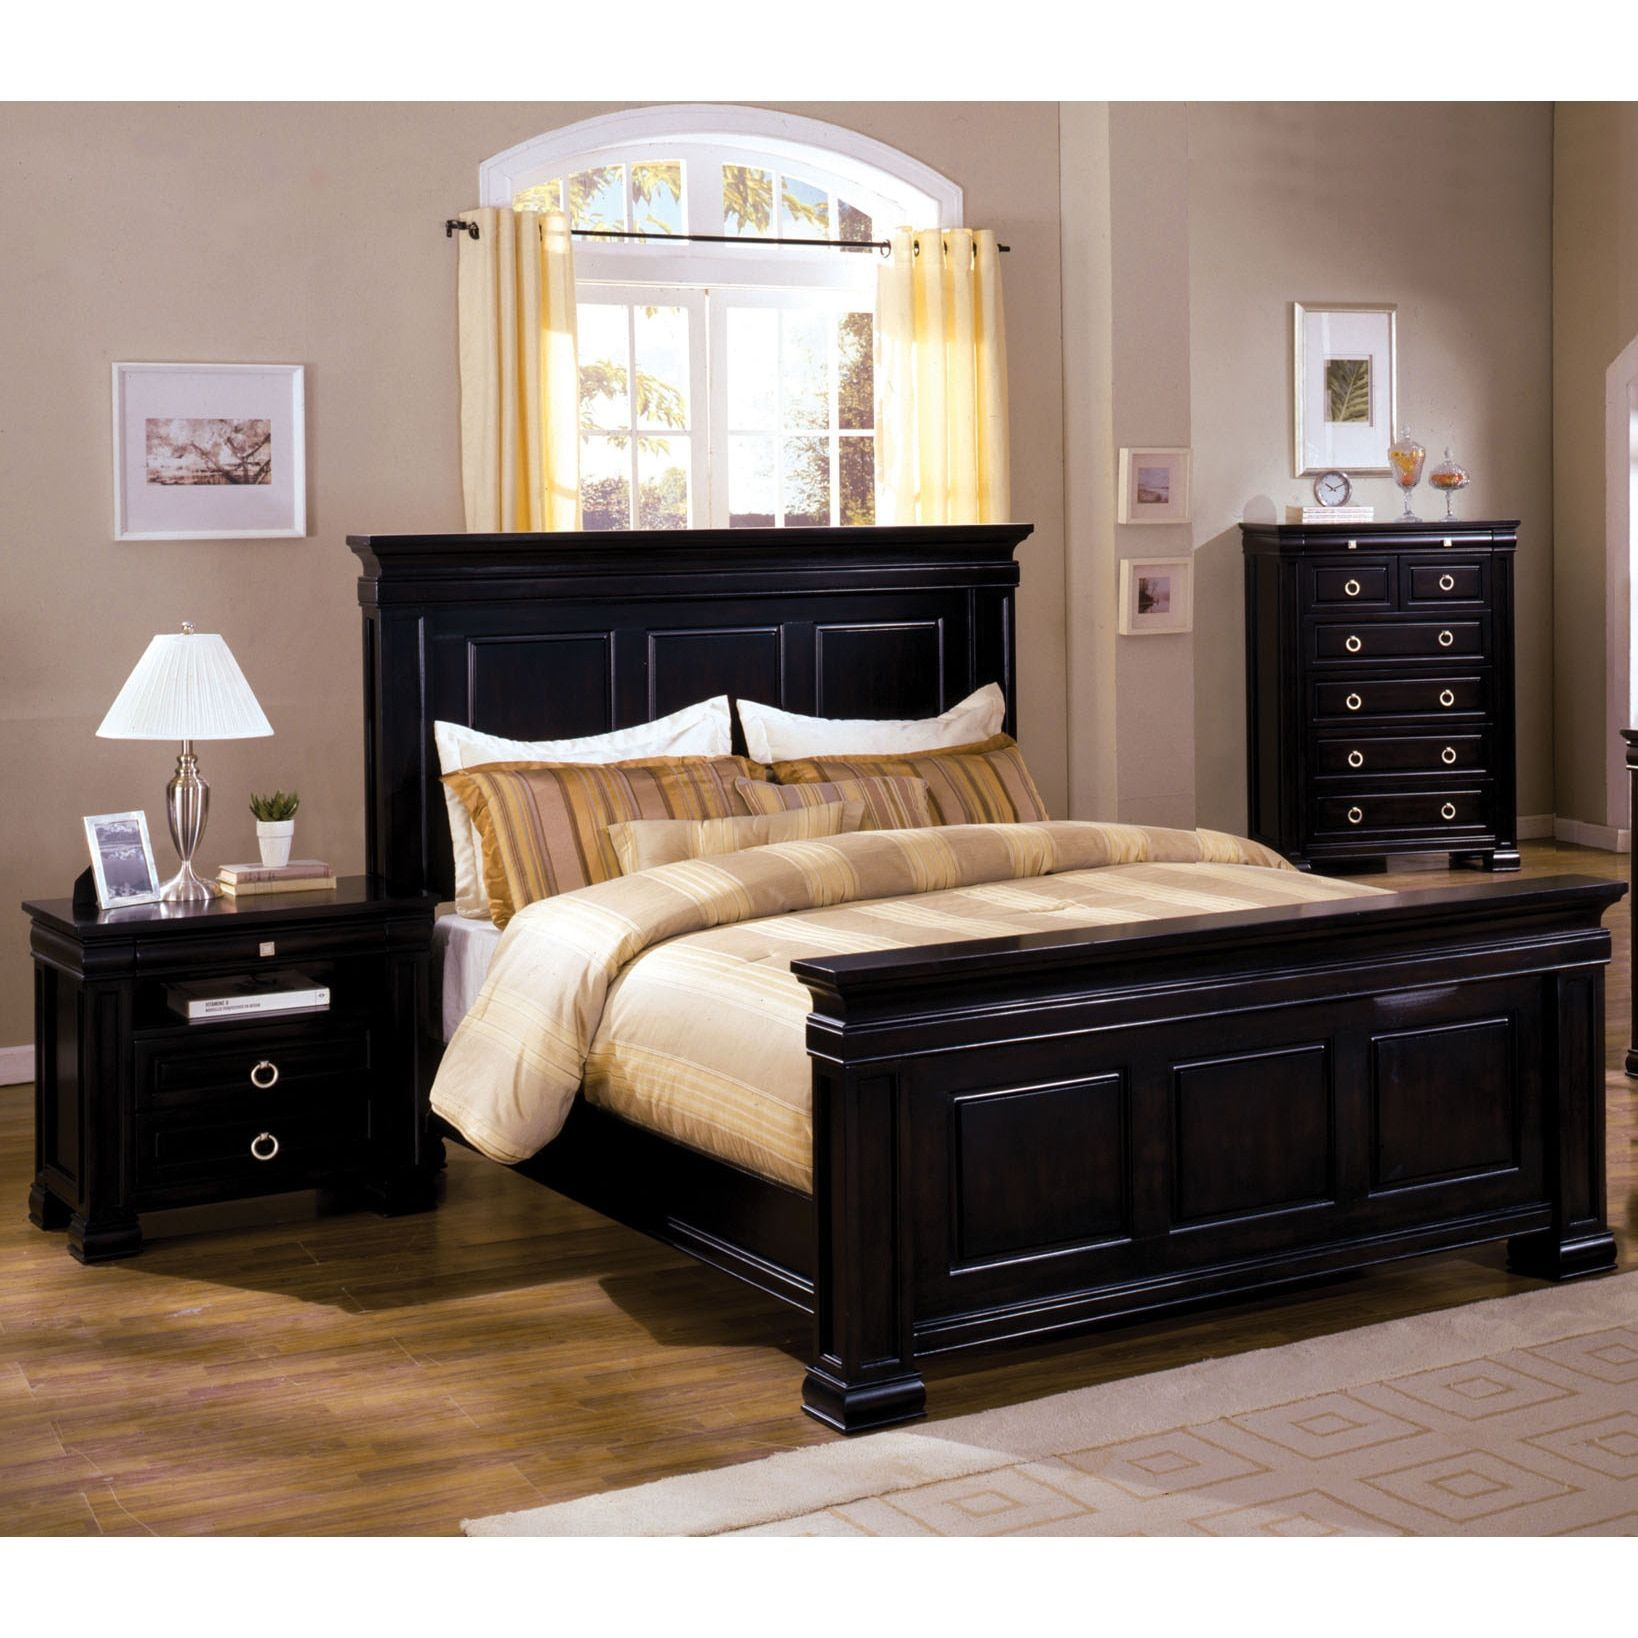 Furniture of america claresse traditional 2 piece espresso panel bedroom set cal king black size california king